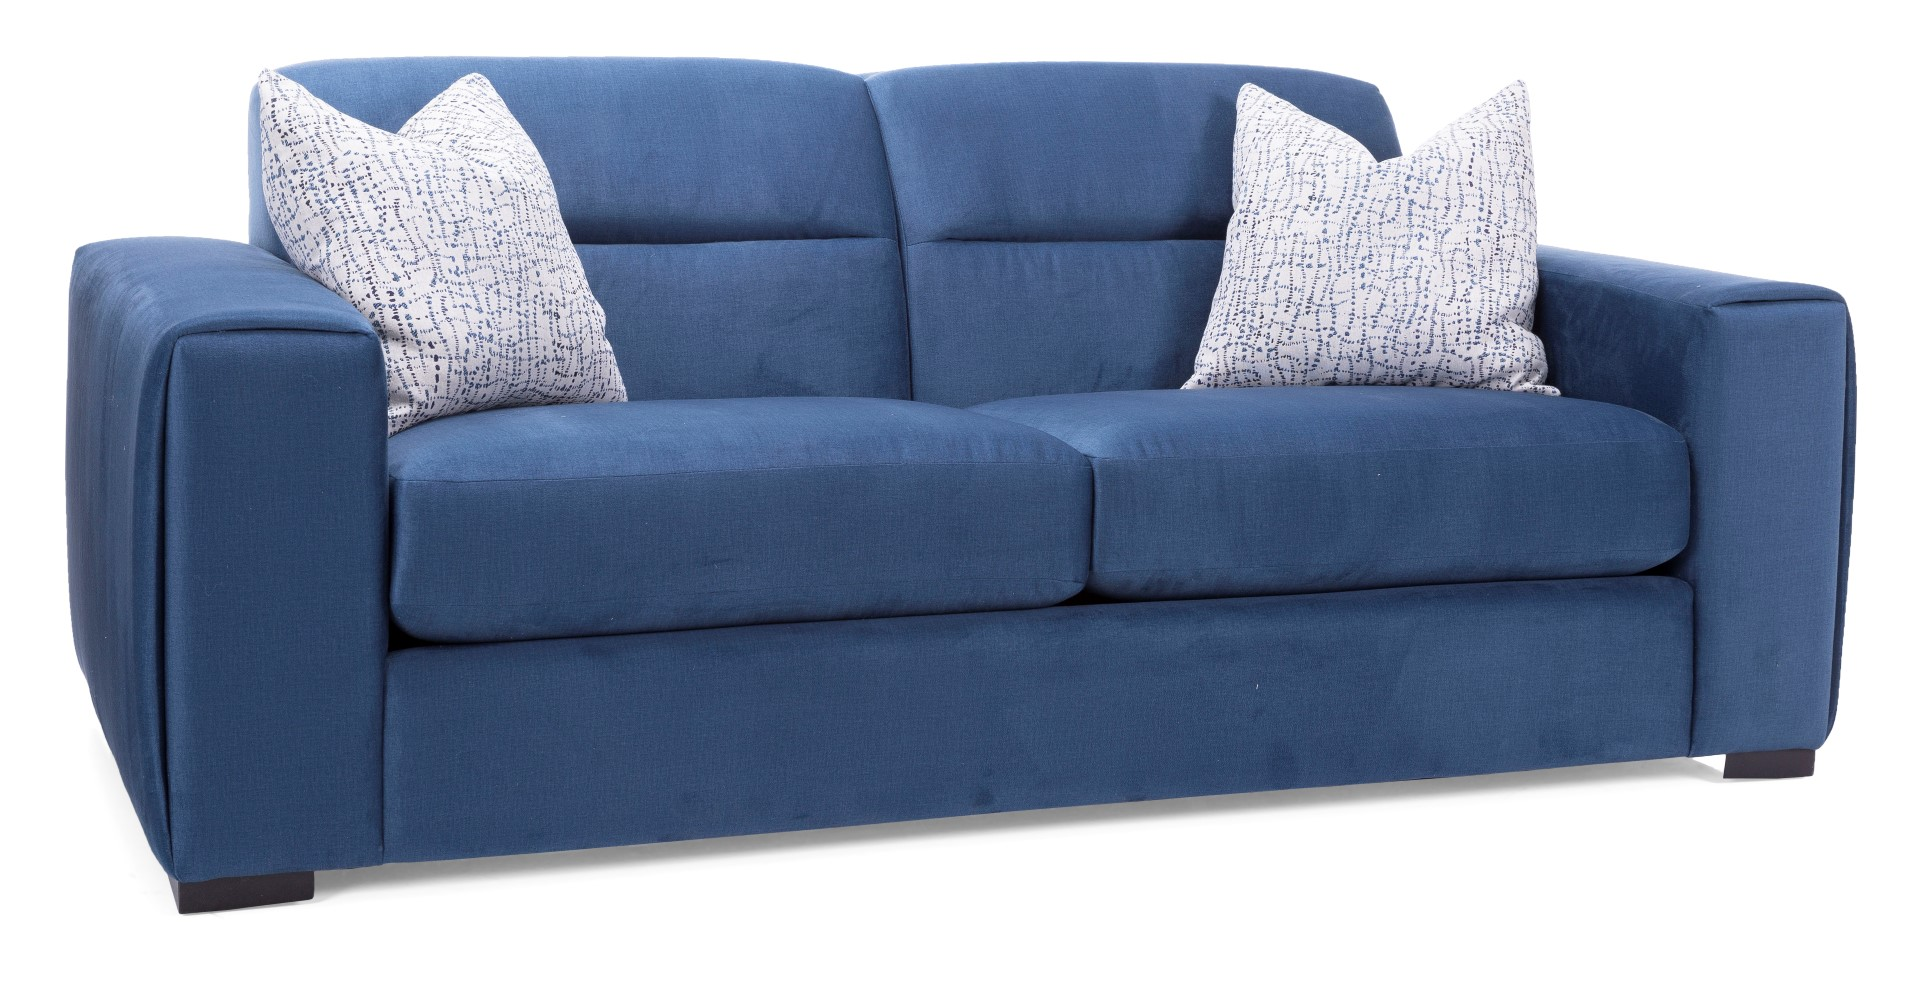 Decor-Rest 2656 Velvet Blue Sofa